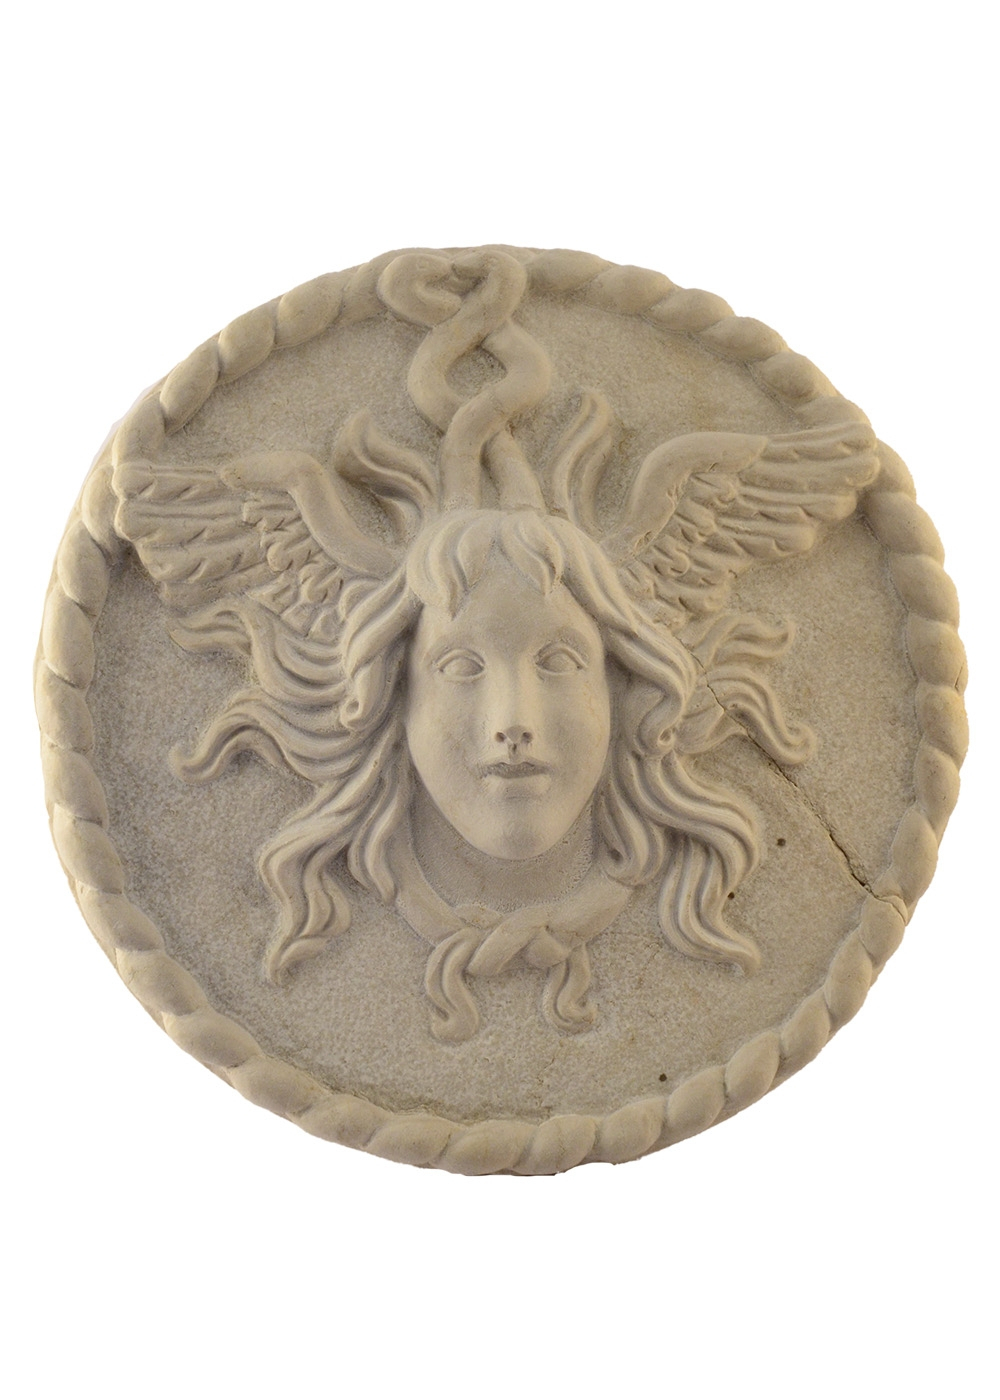 Buy Marble Grotesque Mask Wall Ornamental 17457757 | Italy2Us.com